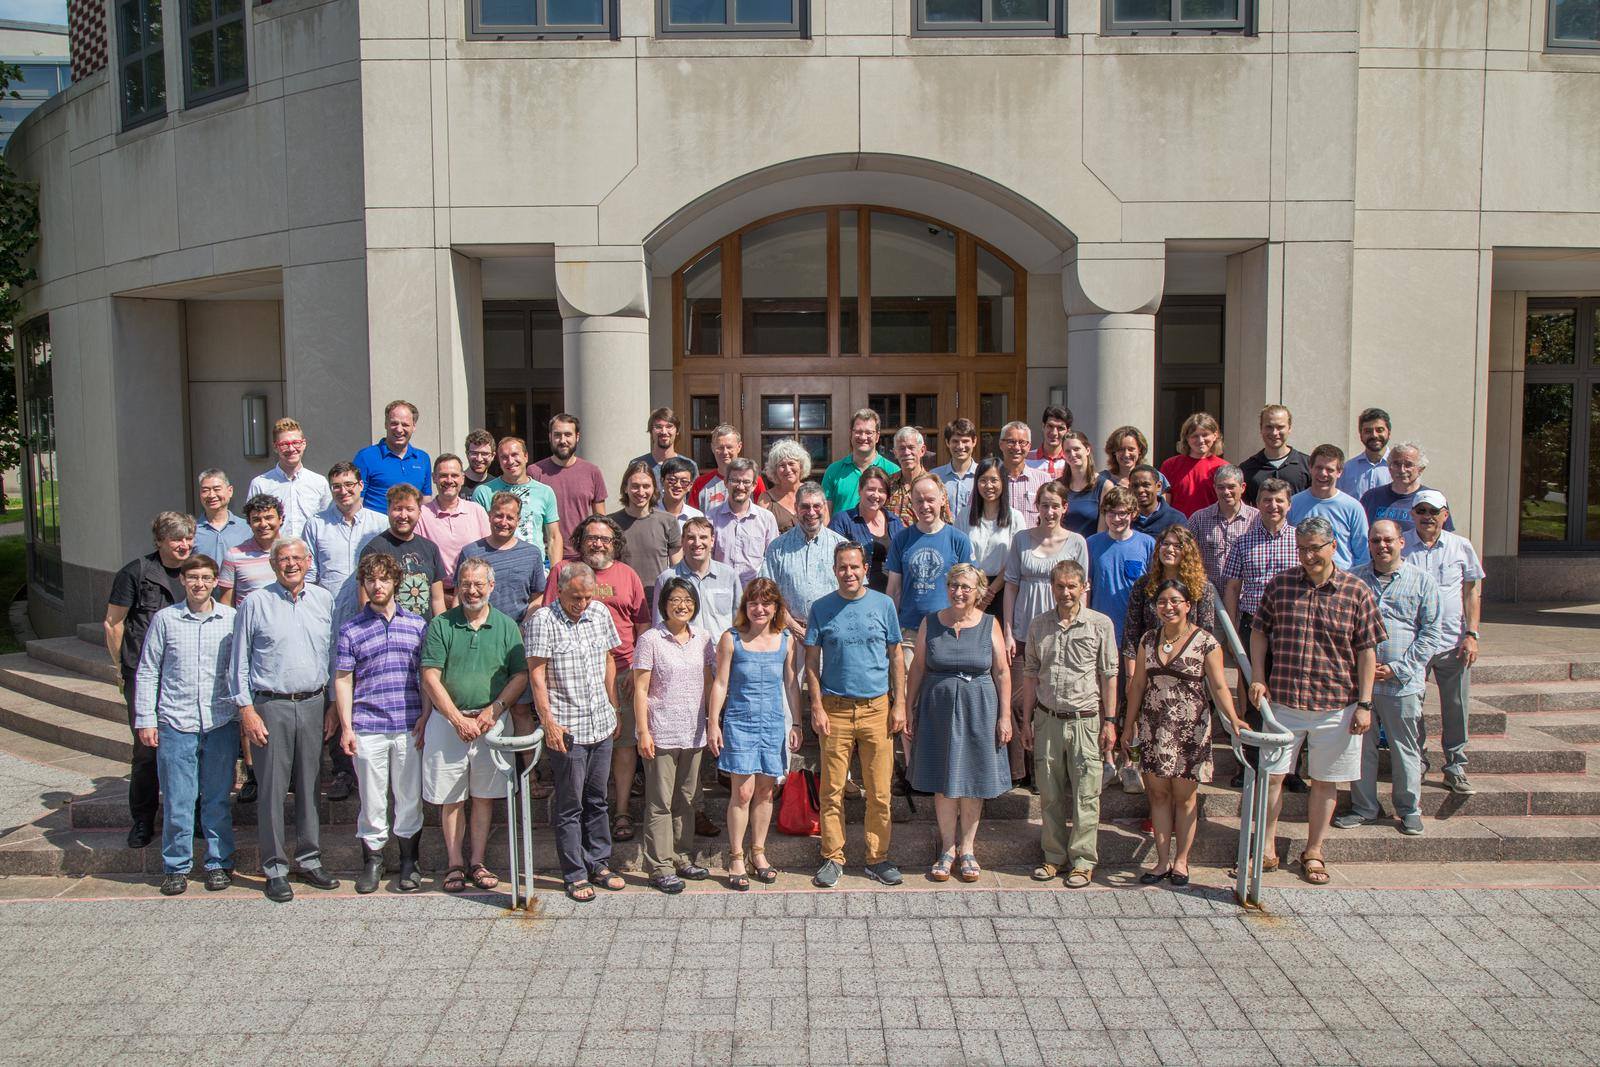 Group photo of the participants of AofA 2017 in Princeton